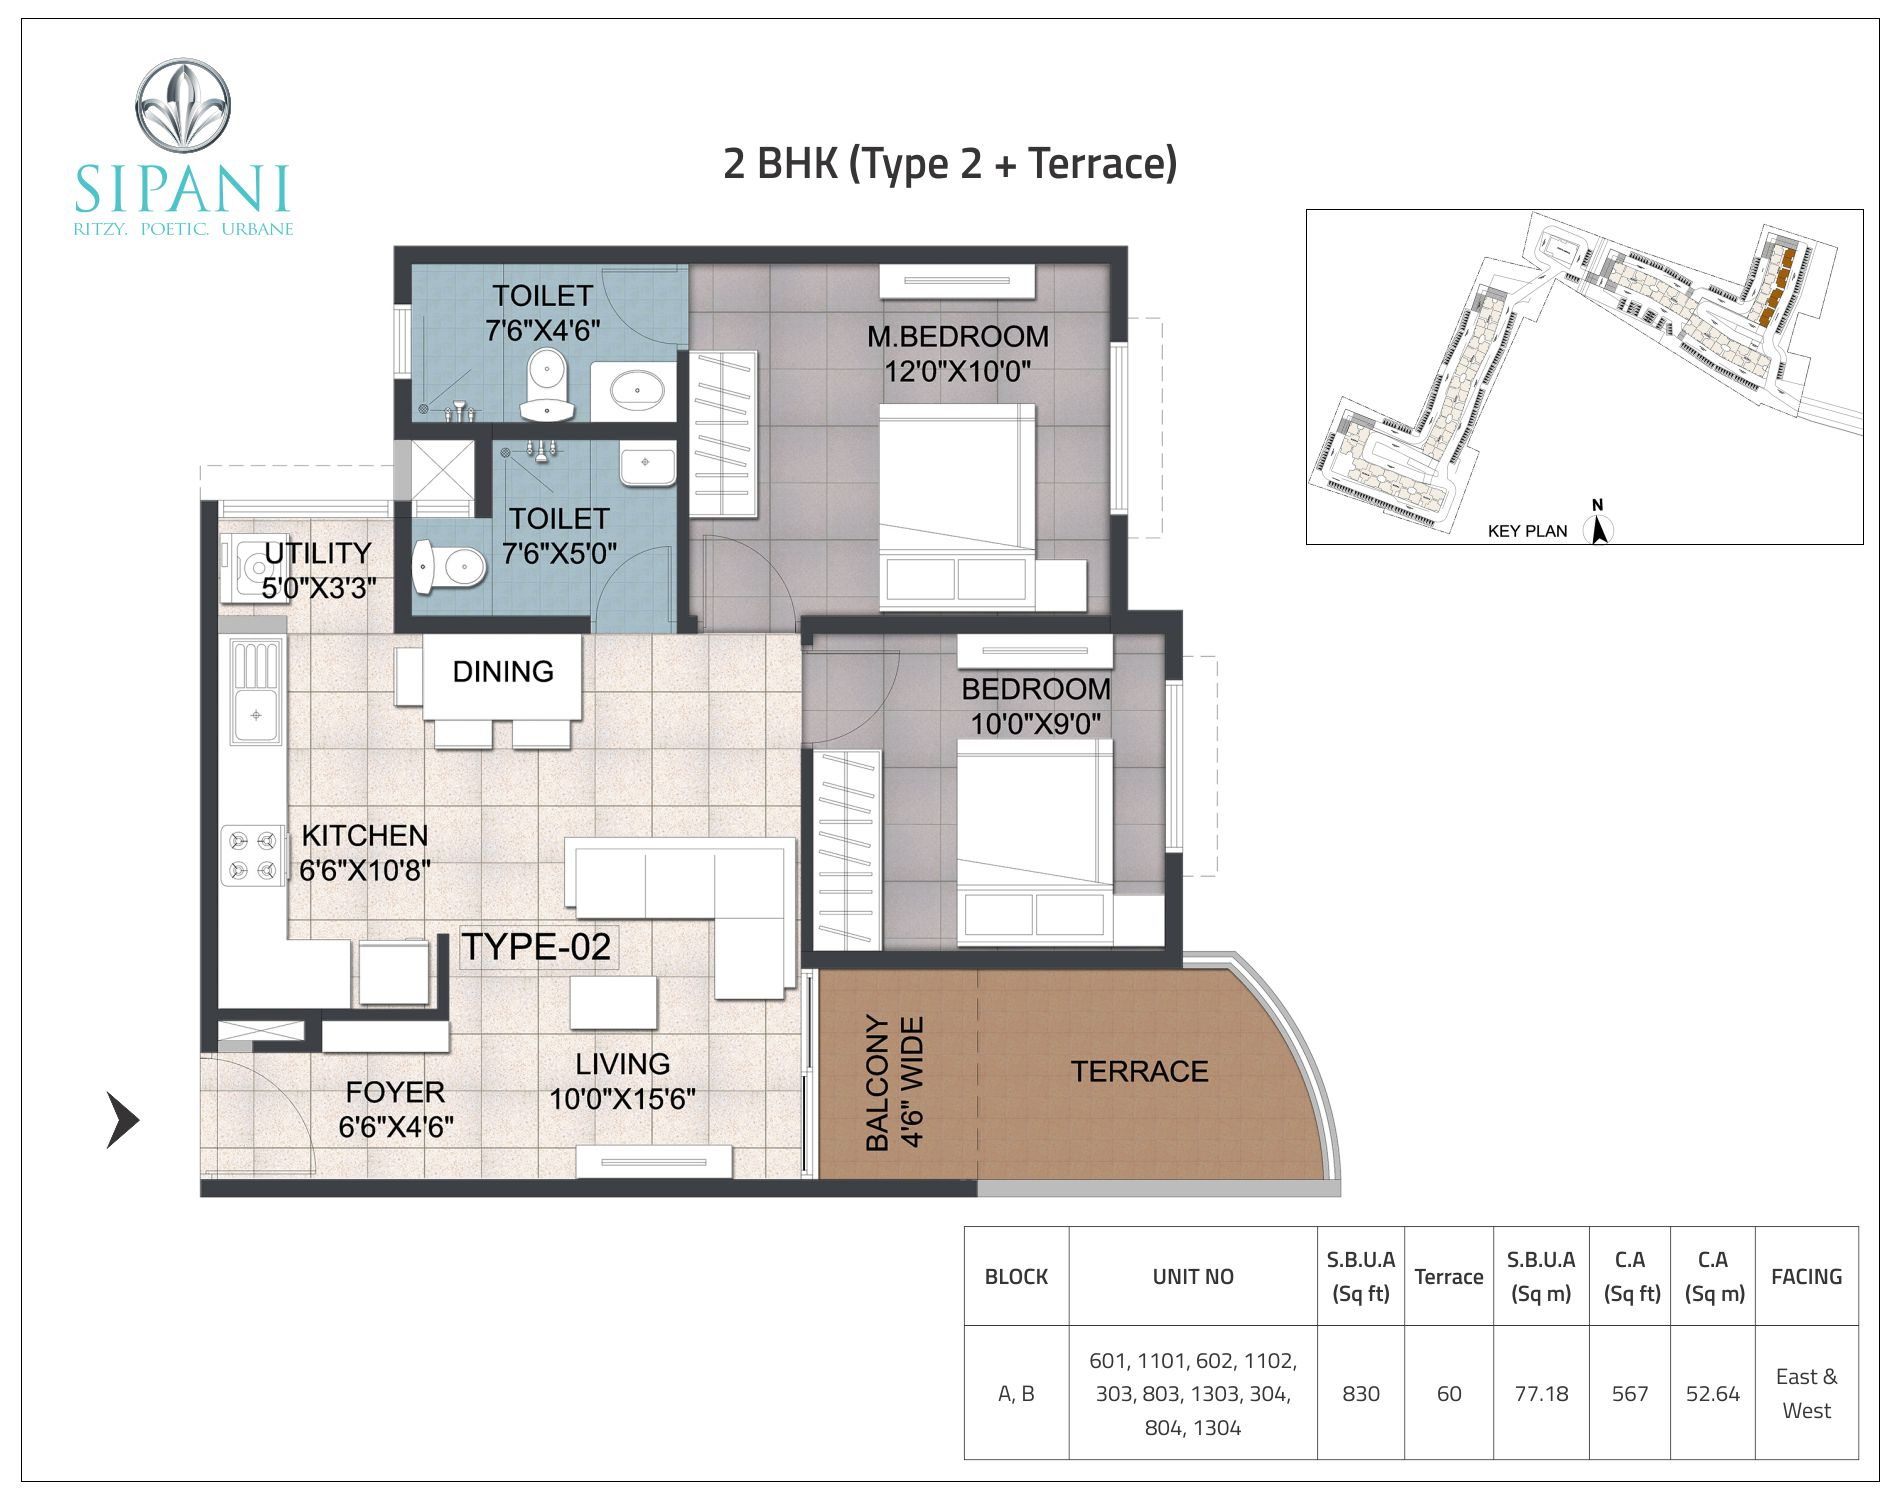 2_BHK_(Type_2+Terrace)1